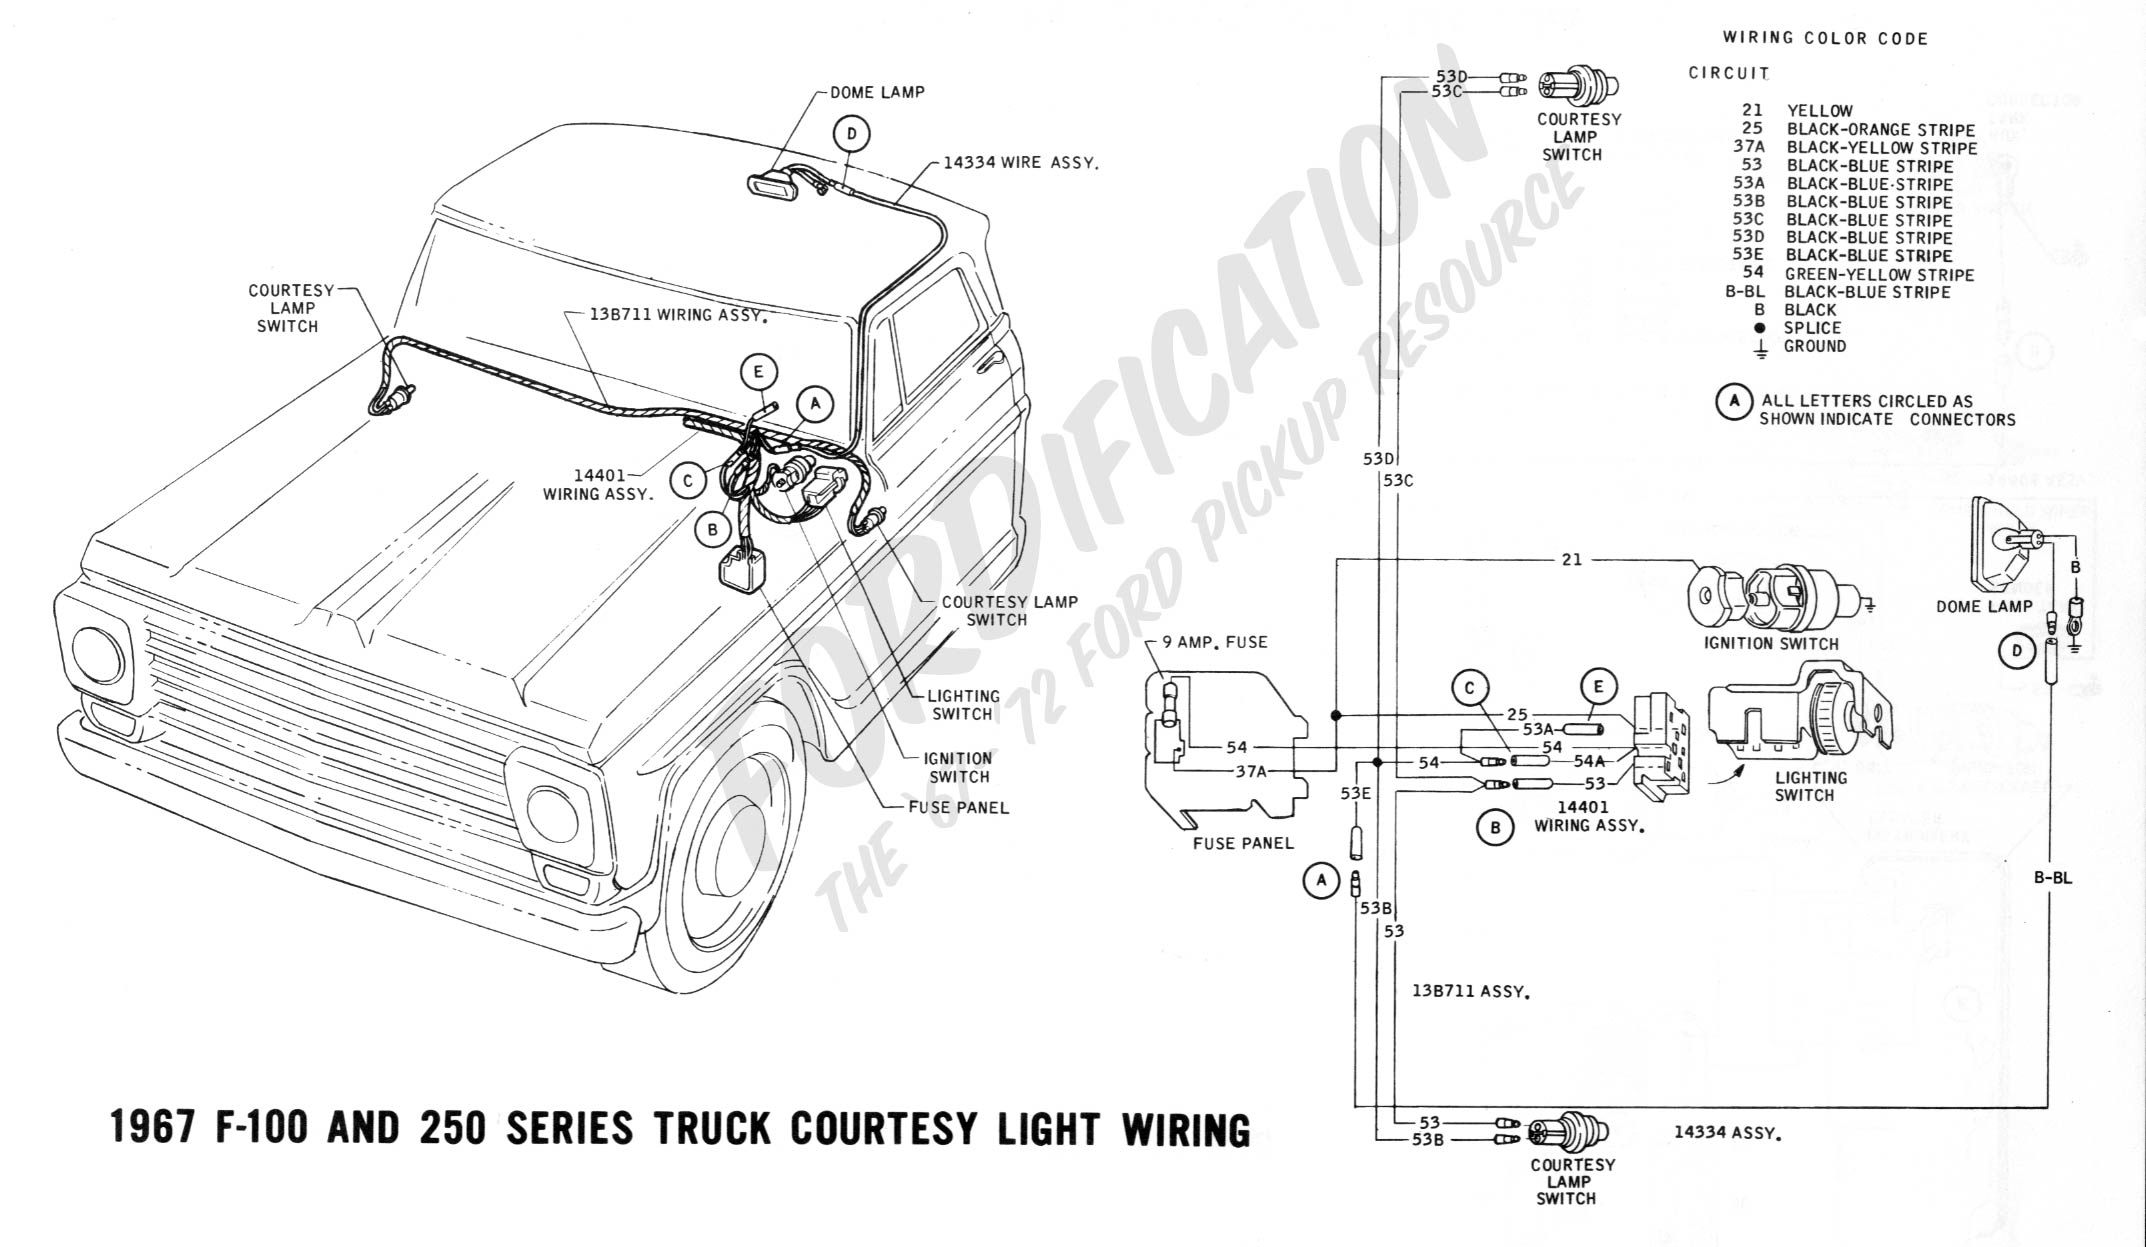 wiring 1967courtesylight ford truck technical drawings and schematics section h wiring ford truck wiring diagrams at fashall.co